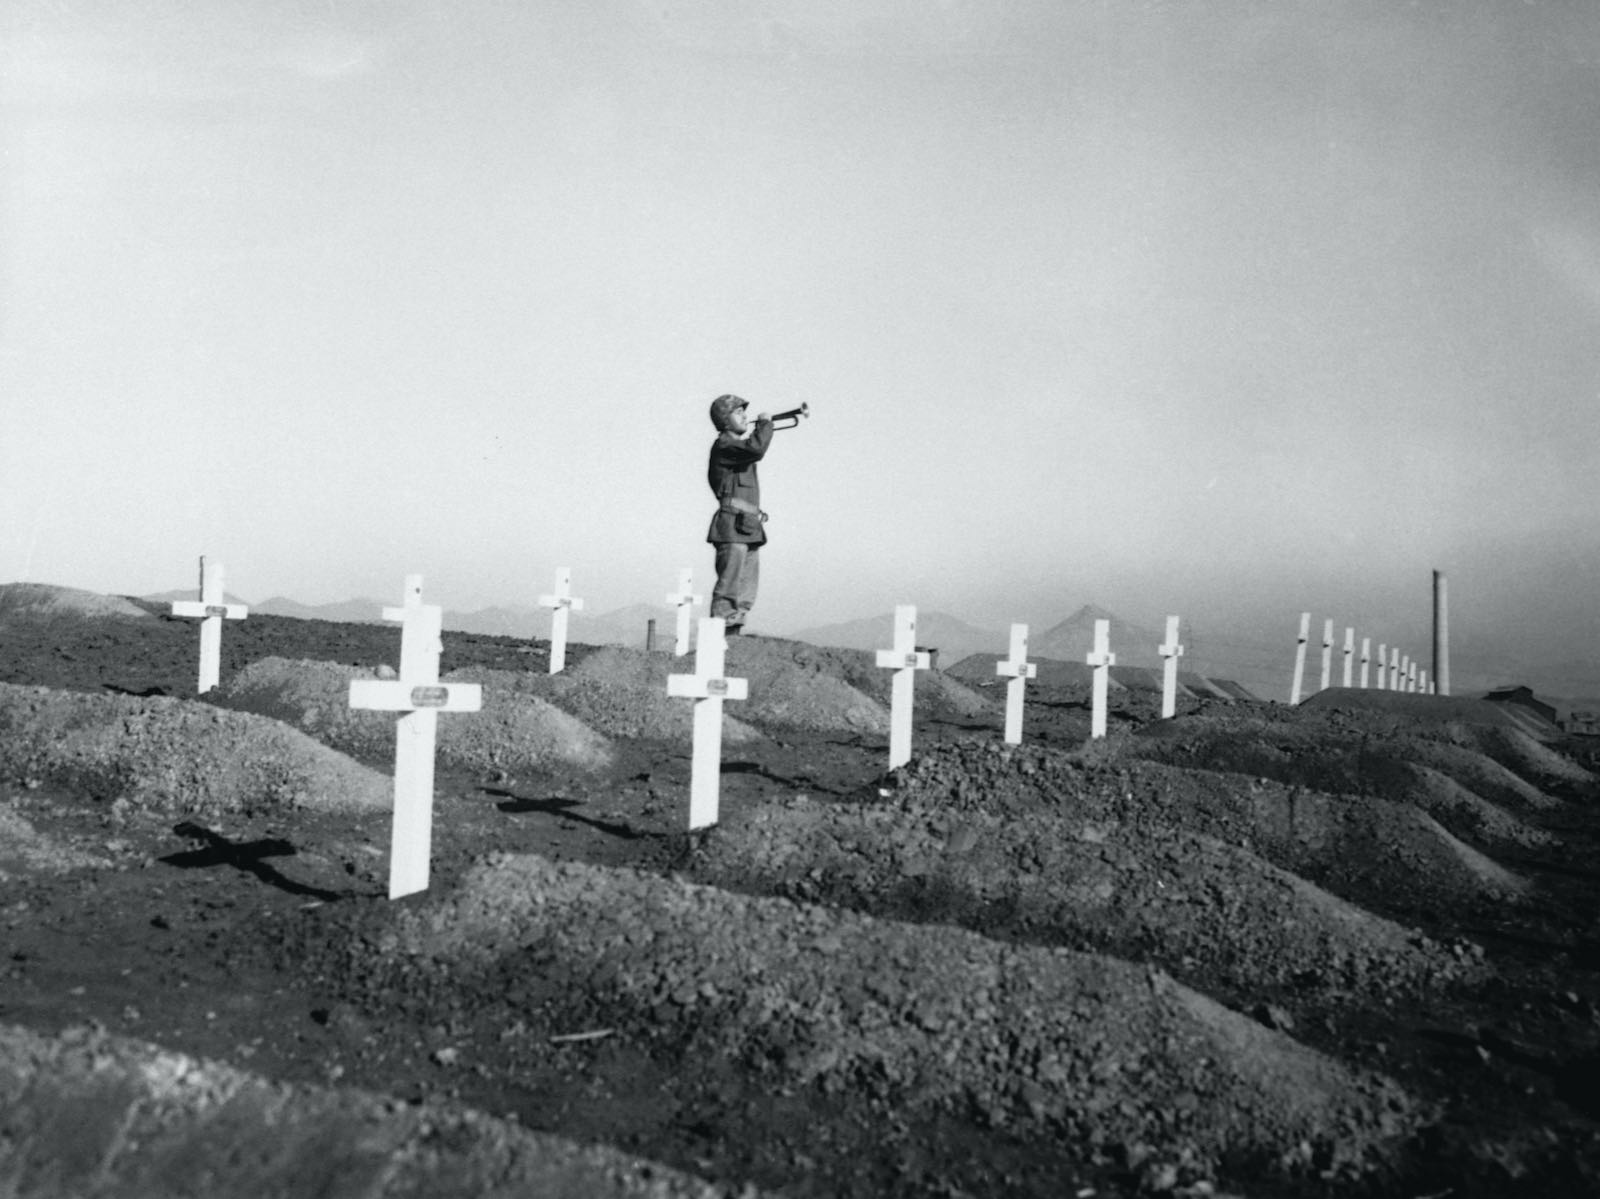 A memorial service on 13 December 1950 in Hungnam, Korea at the graves of fallen US Marines following the break-out from Chosin Reservoir (Corbis via Getty Images)